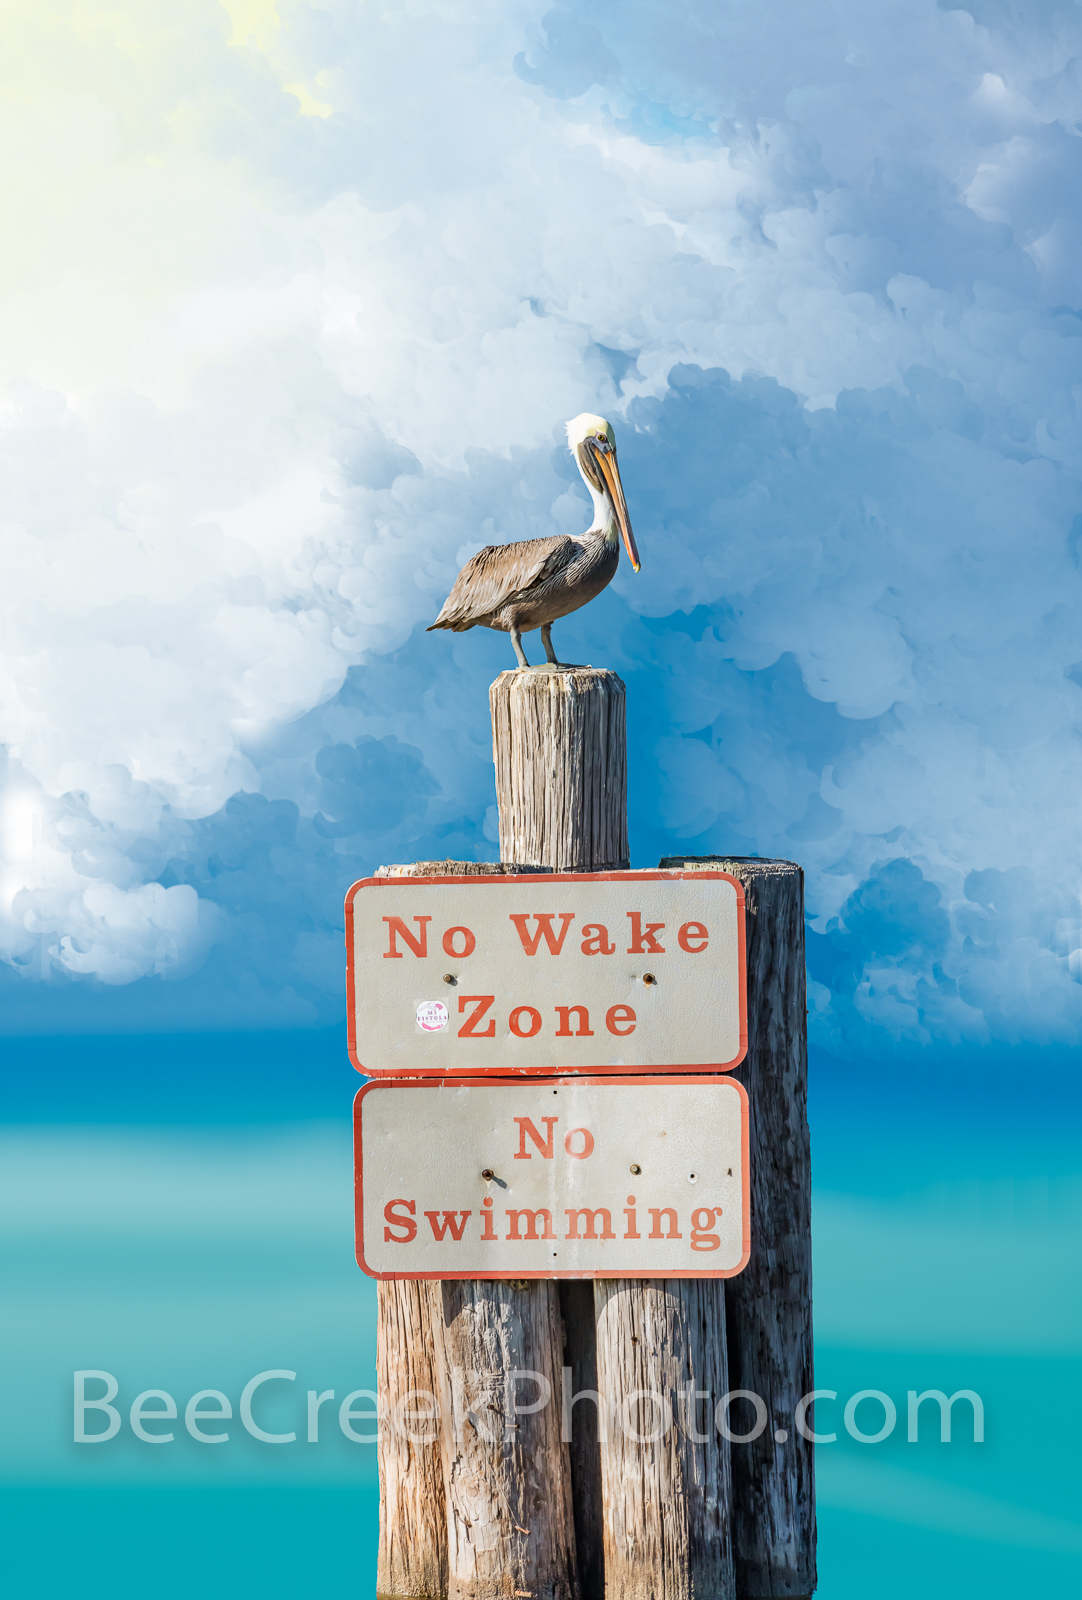 Pelican King - We name this the Pelican King because his stoic pose on top of the post with the no wake zone sign which just...